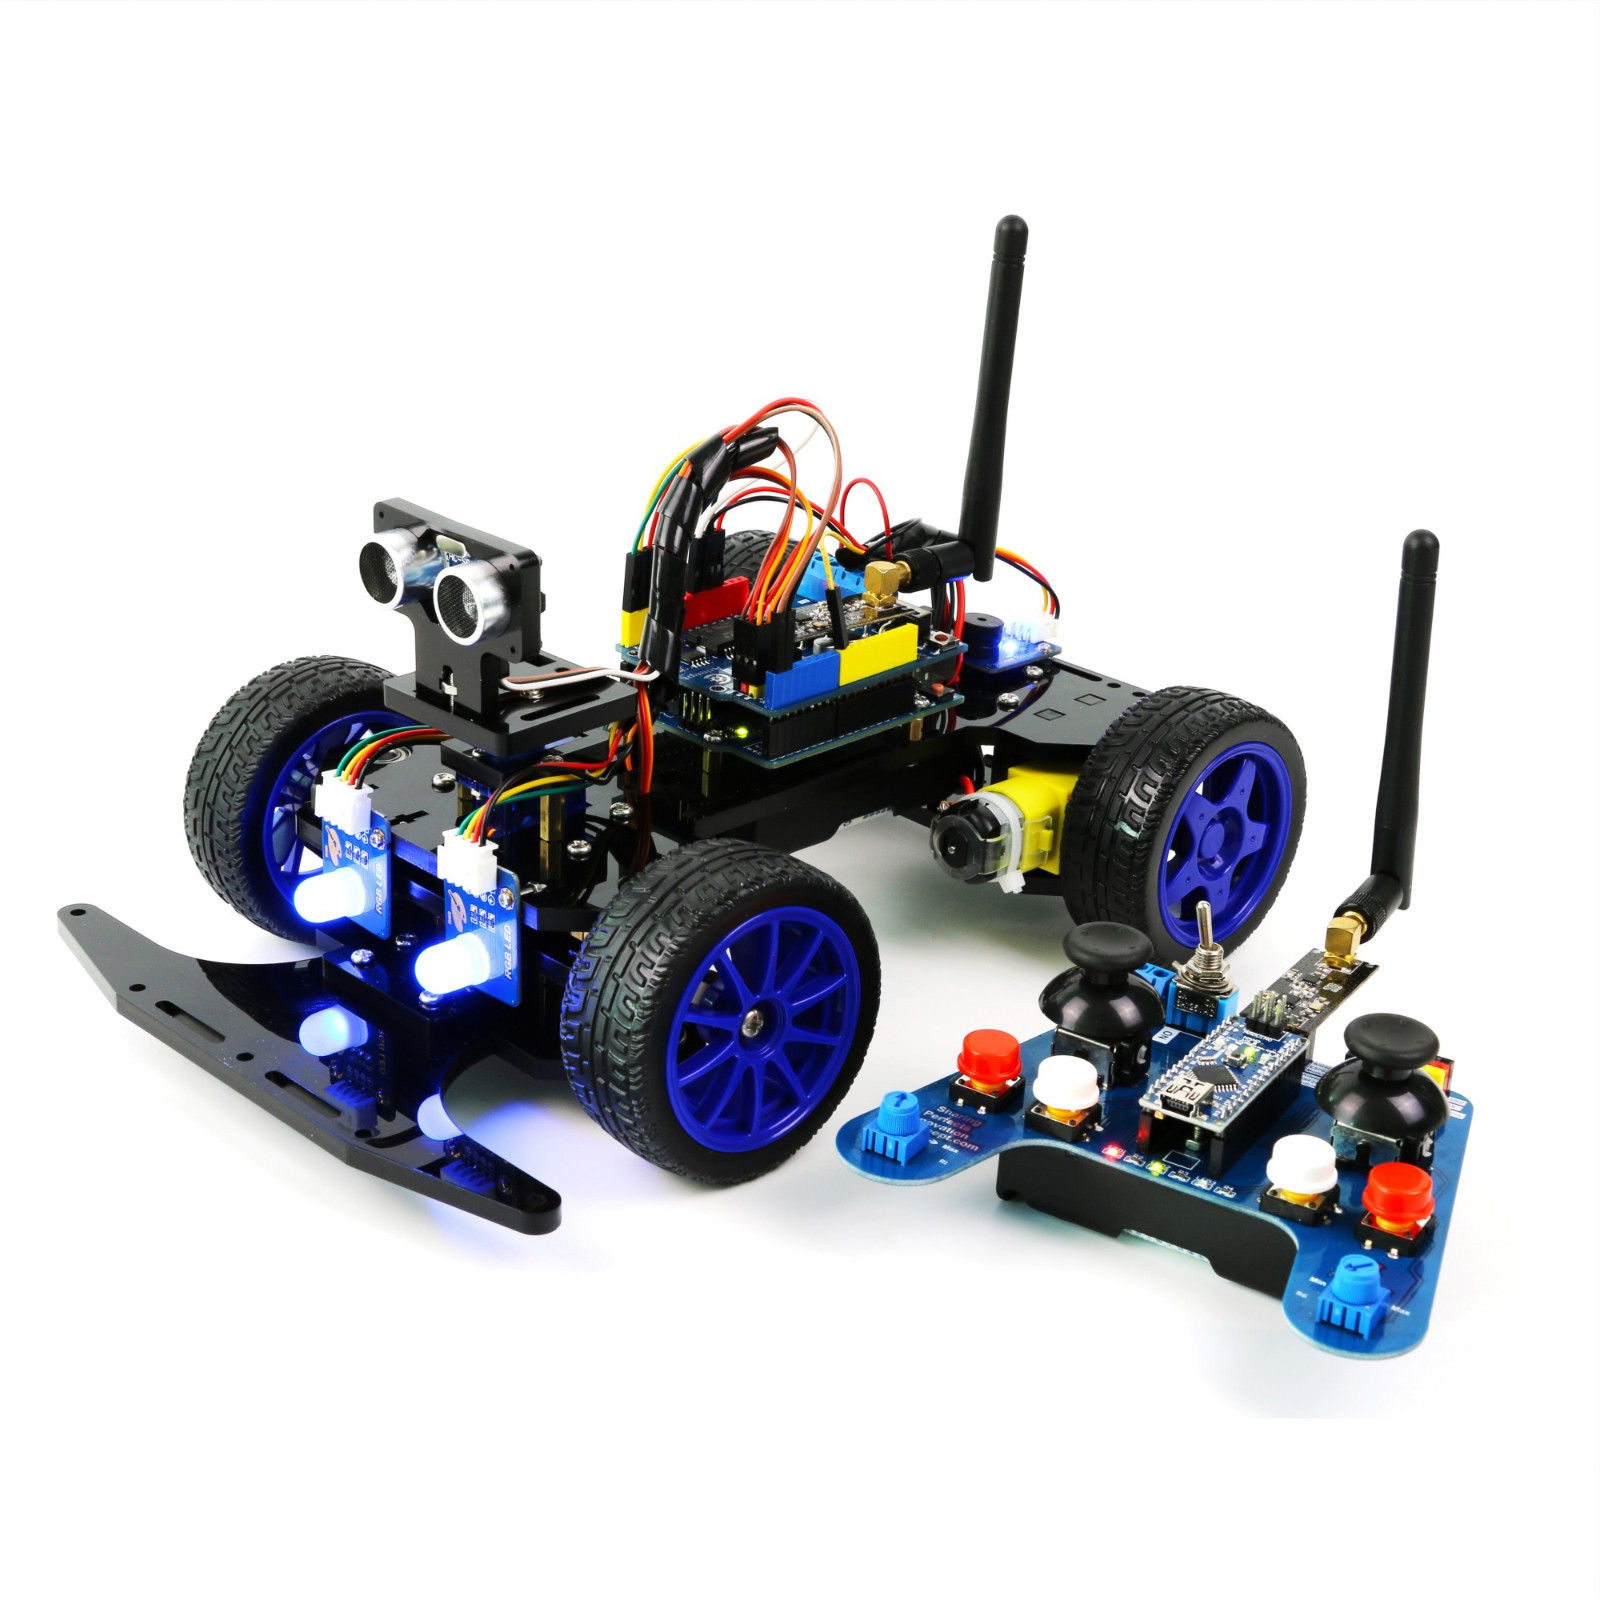 Adeept Robotics Model Arduino Smart Car kit Electronics DIY Ultrasonic Toys APP by